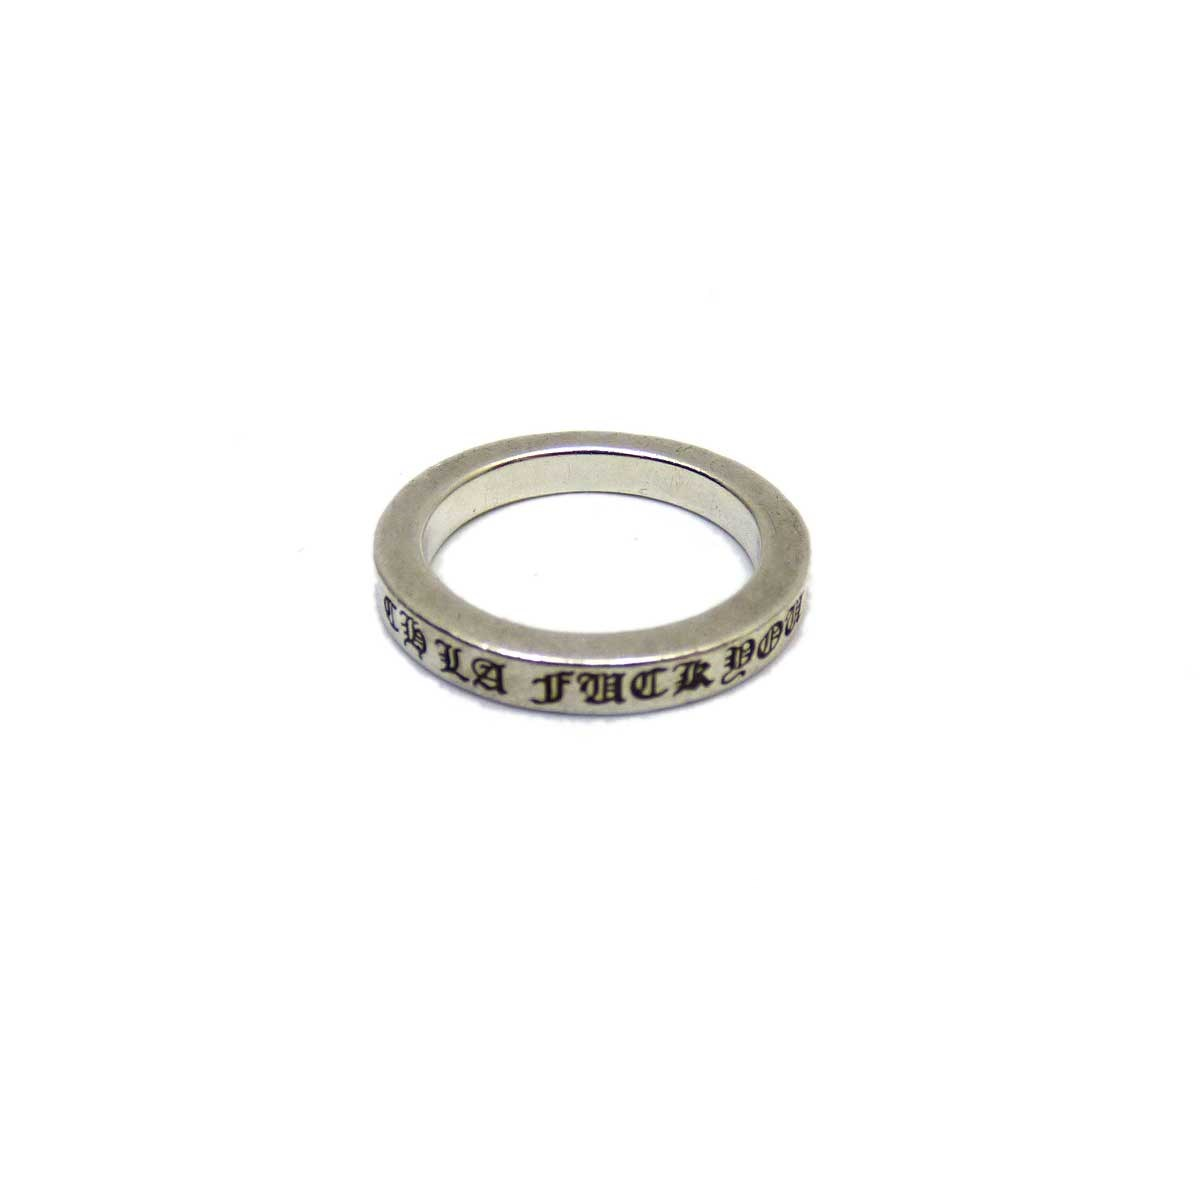 【中古】CHROME HEARTS Ring Spacer 3mm CHLA Fuck you シルバーリング 【送料無料】 【146413】 【KIND1550】